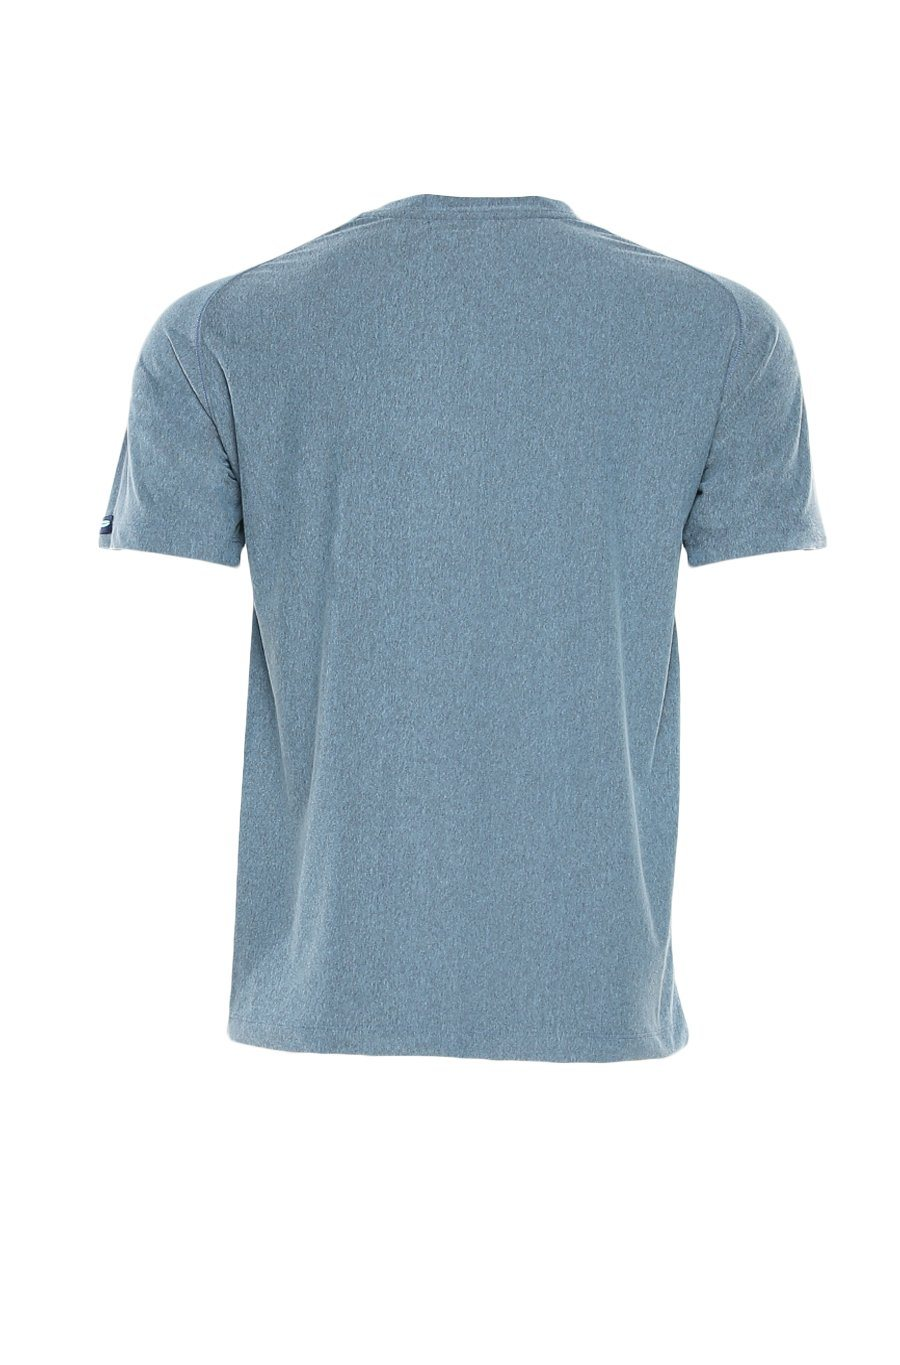 Shore Men's Active Crew Tee - Faded Denim